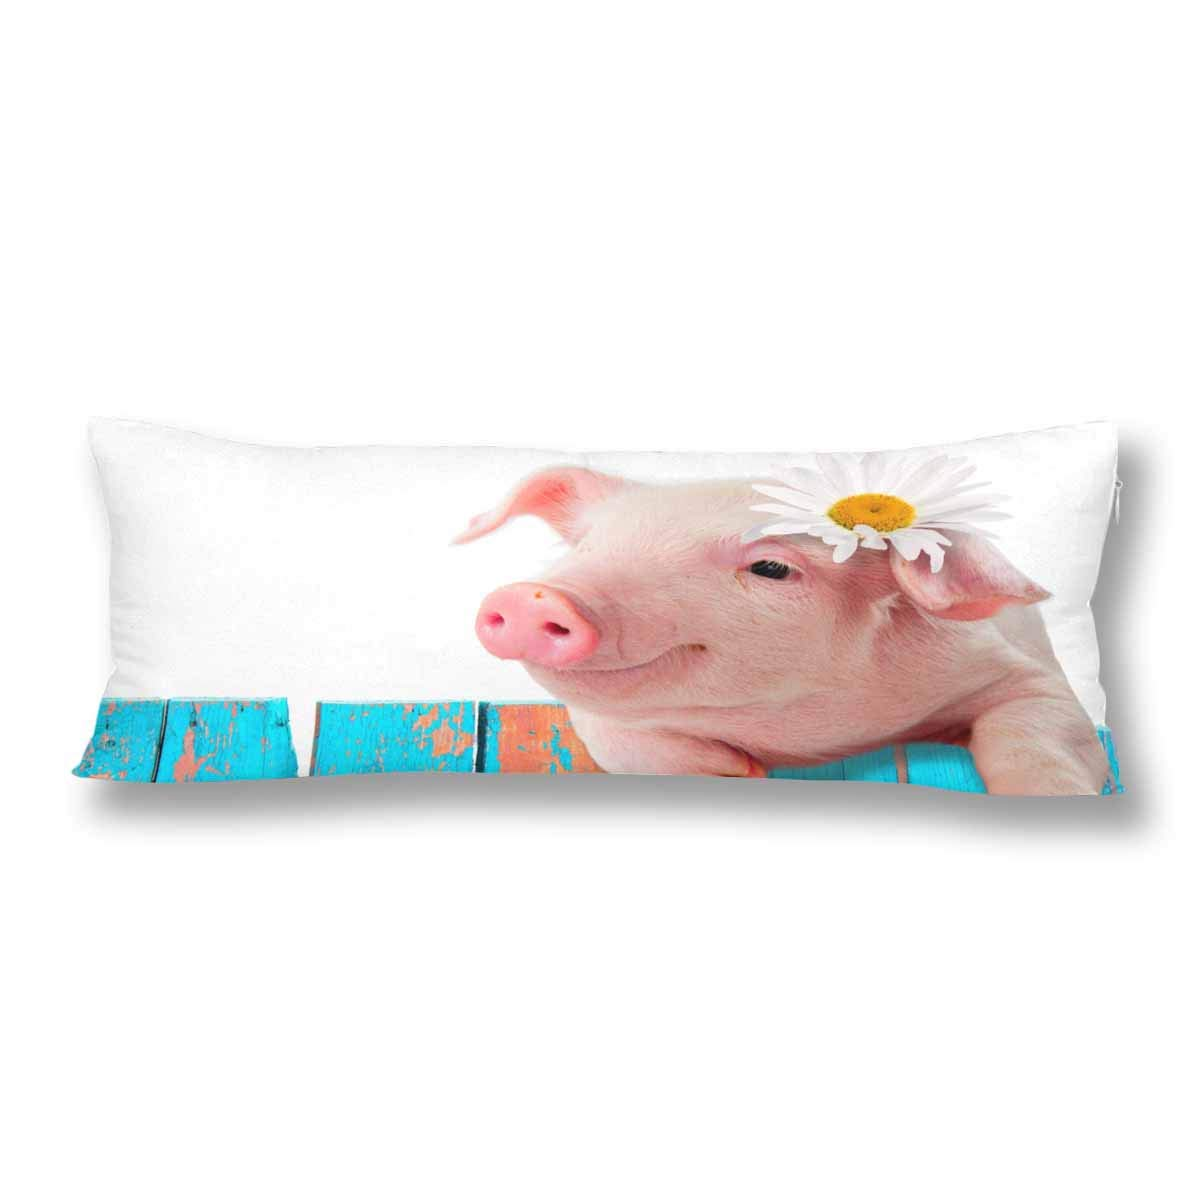 InterestPrint Cut Pink Pig Piglet Leaning on The Fence Lovely Animal Pillow Covers Pillowcase with Zipper 21x60 Twin Sides, Rectangle Body Pillow Case Protector for Home Couch Sofa Bedding Decorative